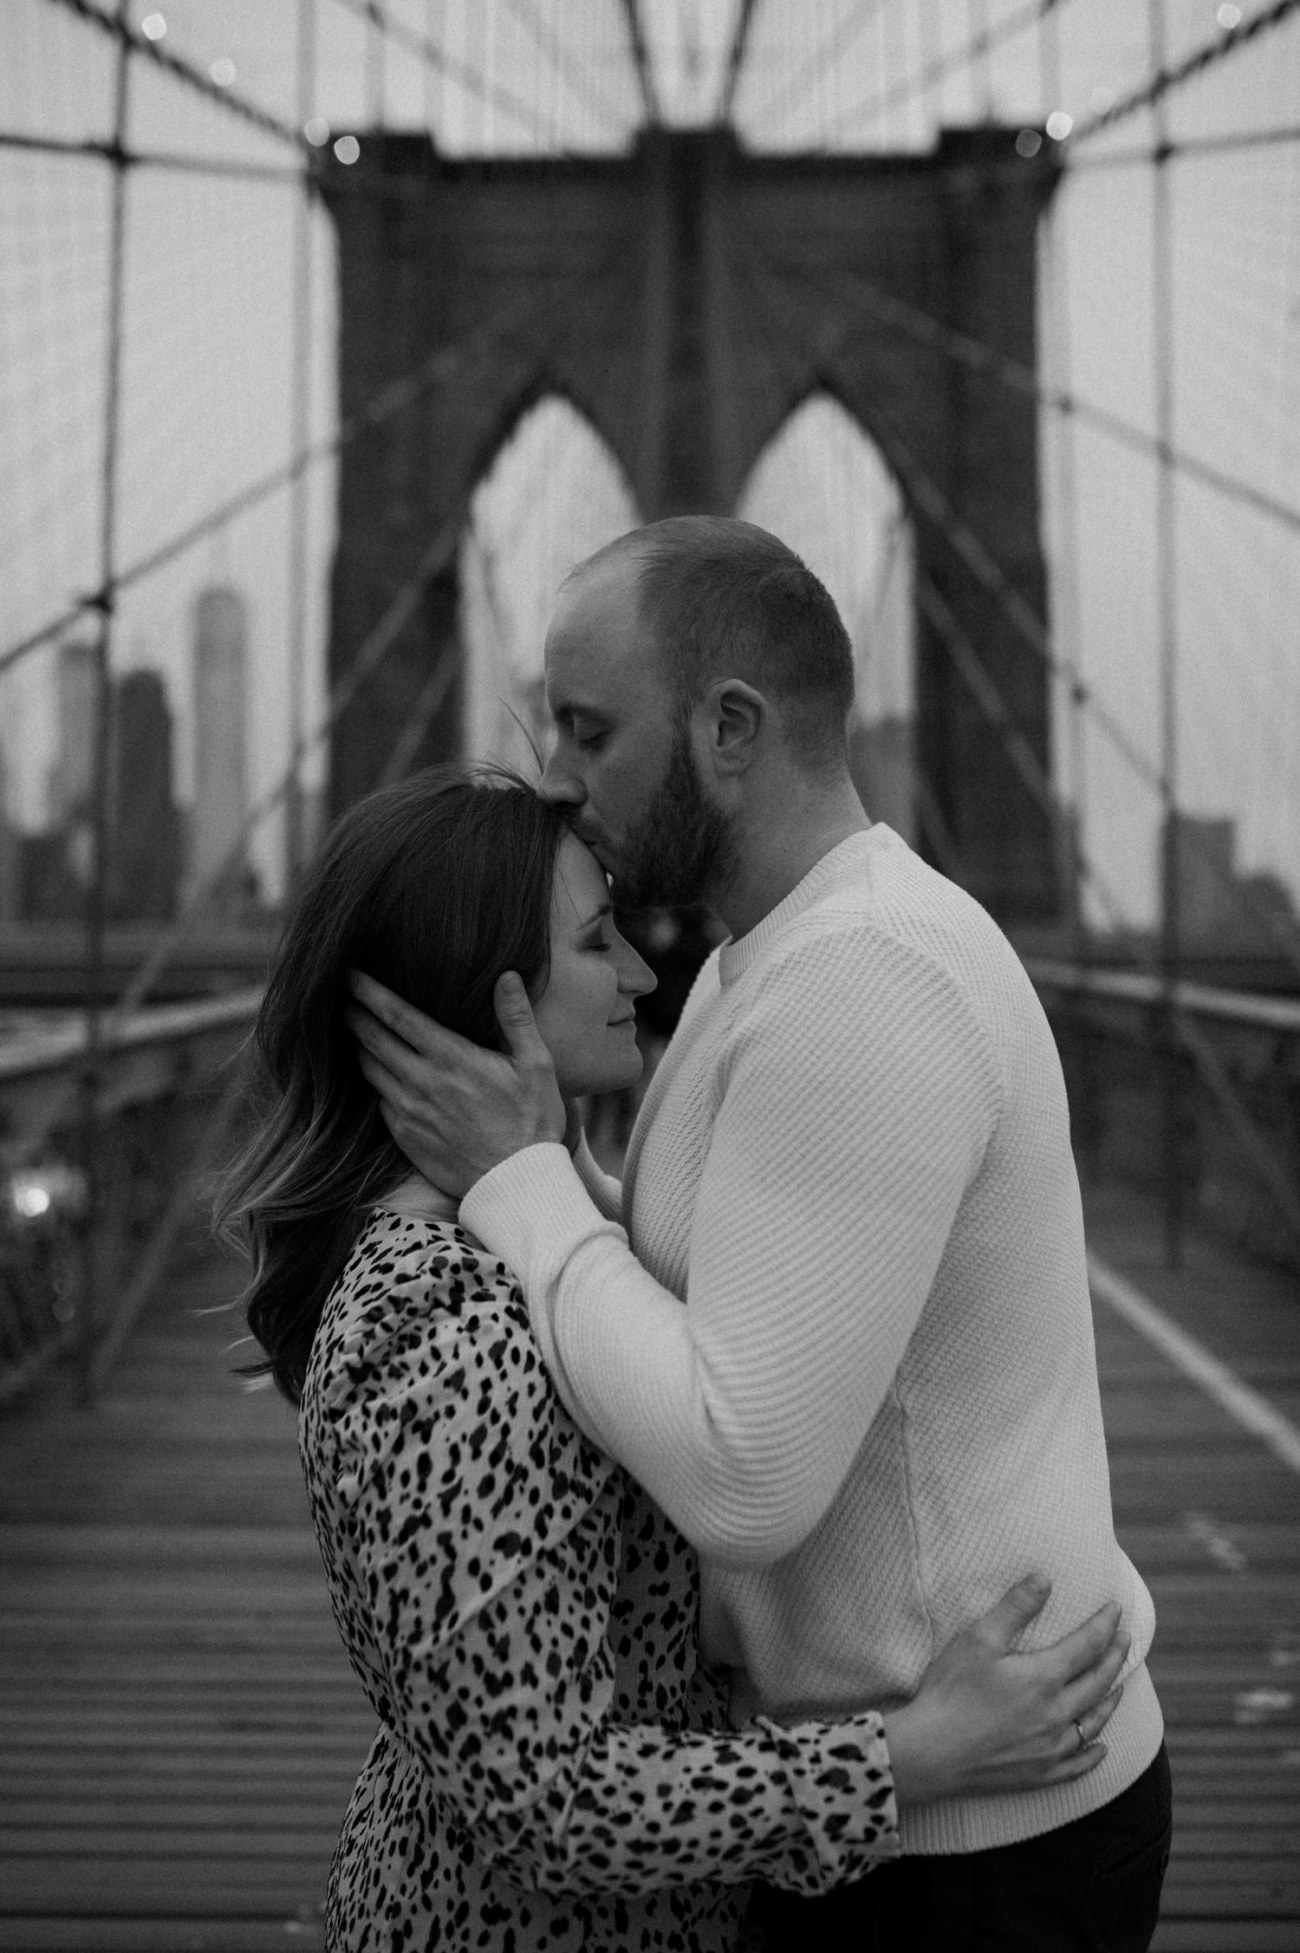 Brooklyn Bridge Engagement Photos Brooklyn Dumbo Couple Session NYC Wedding Photographer Anais Possamai Photography 10